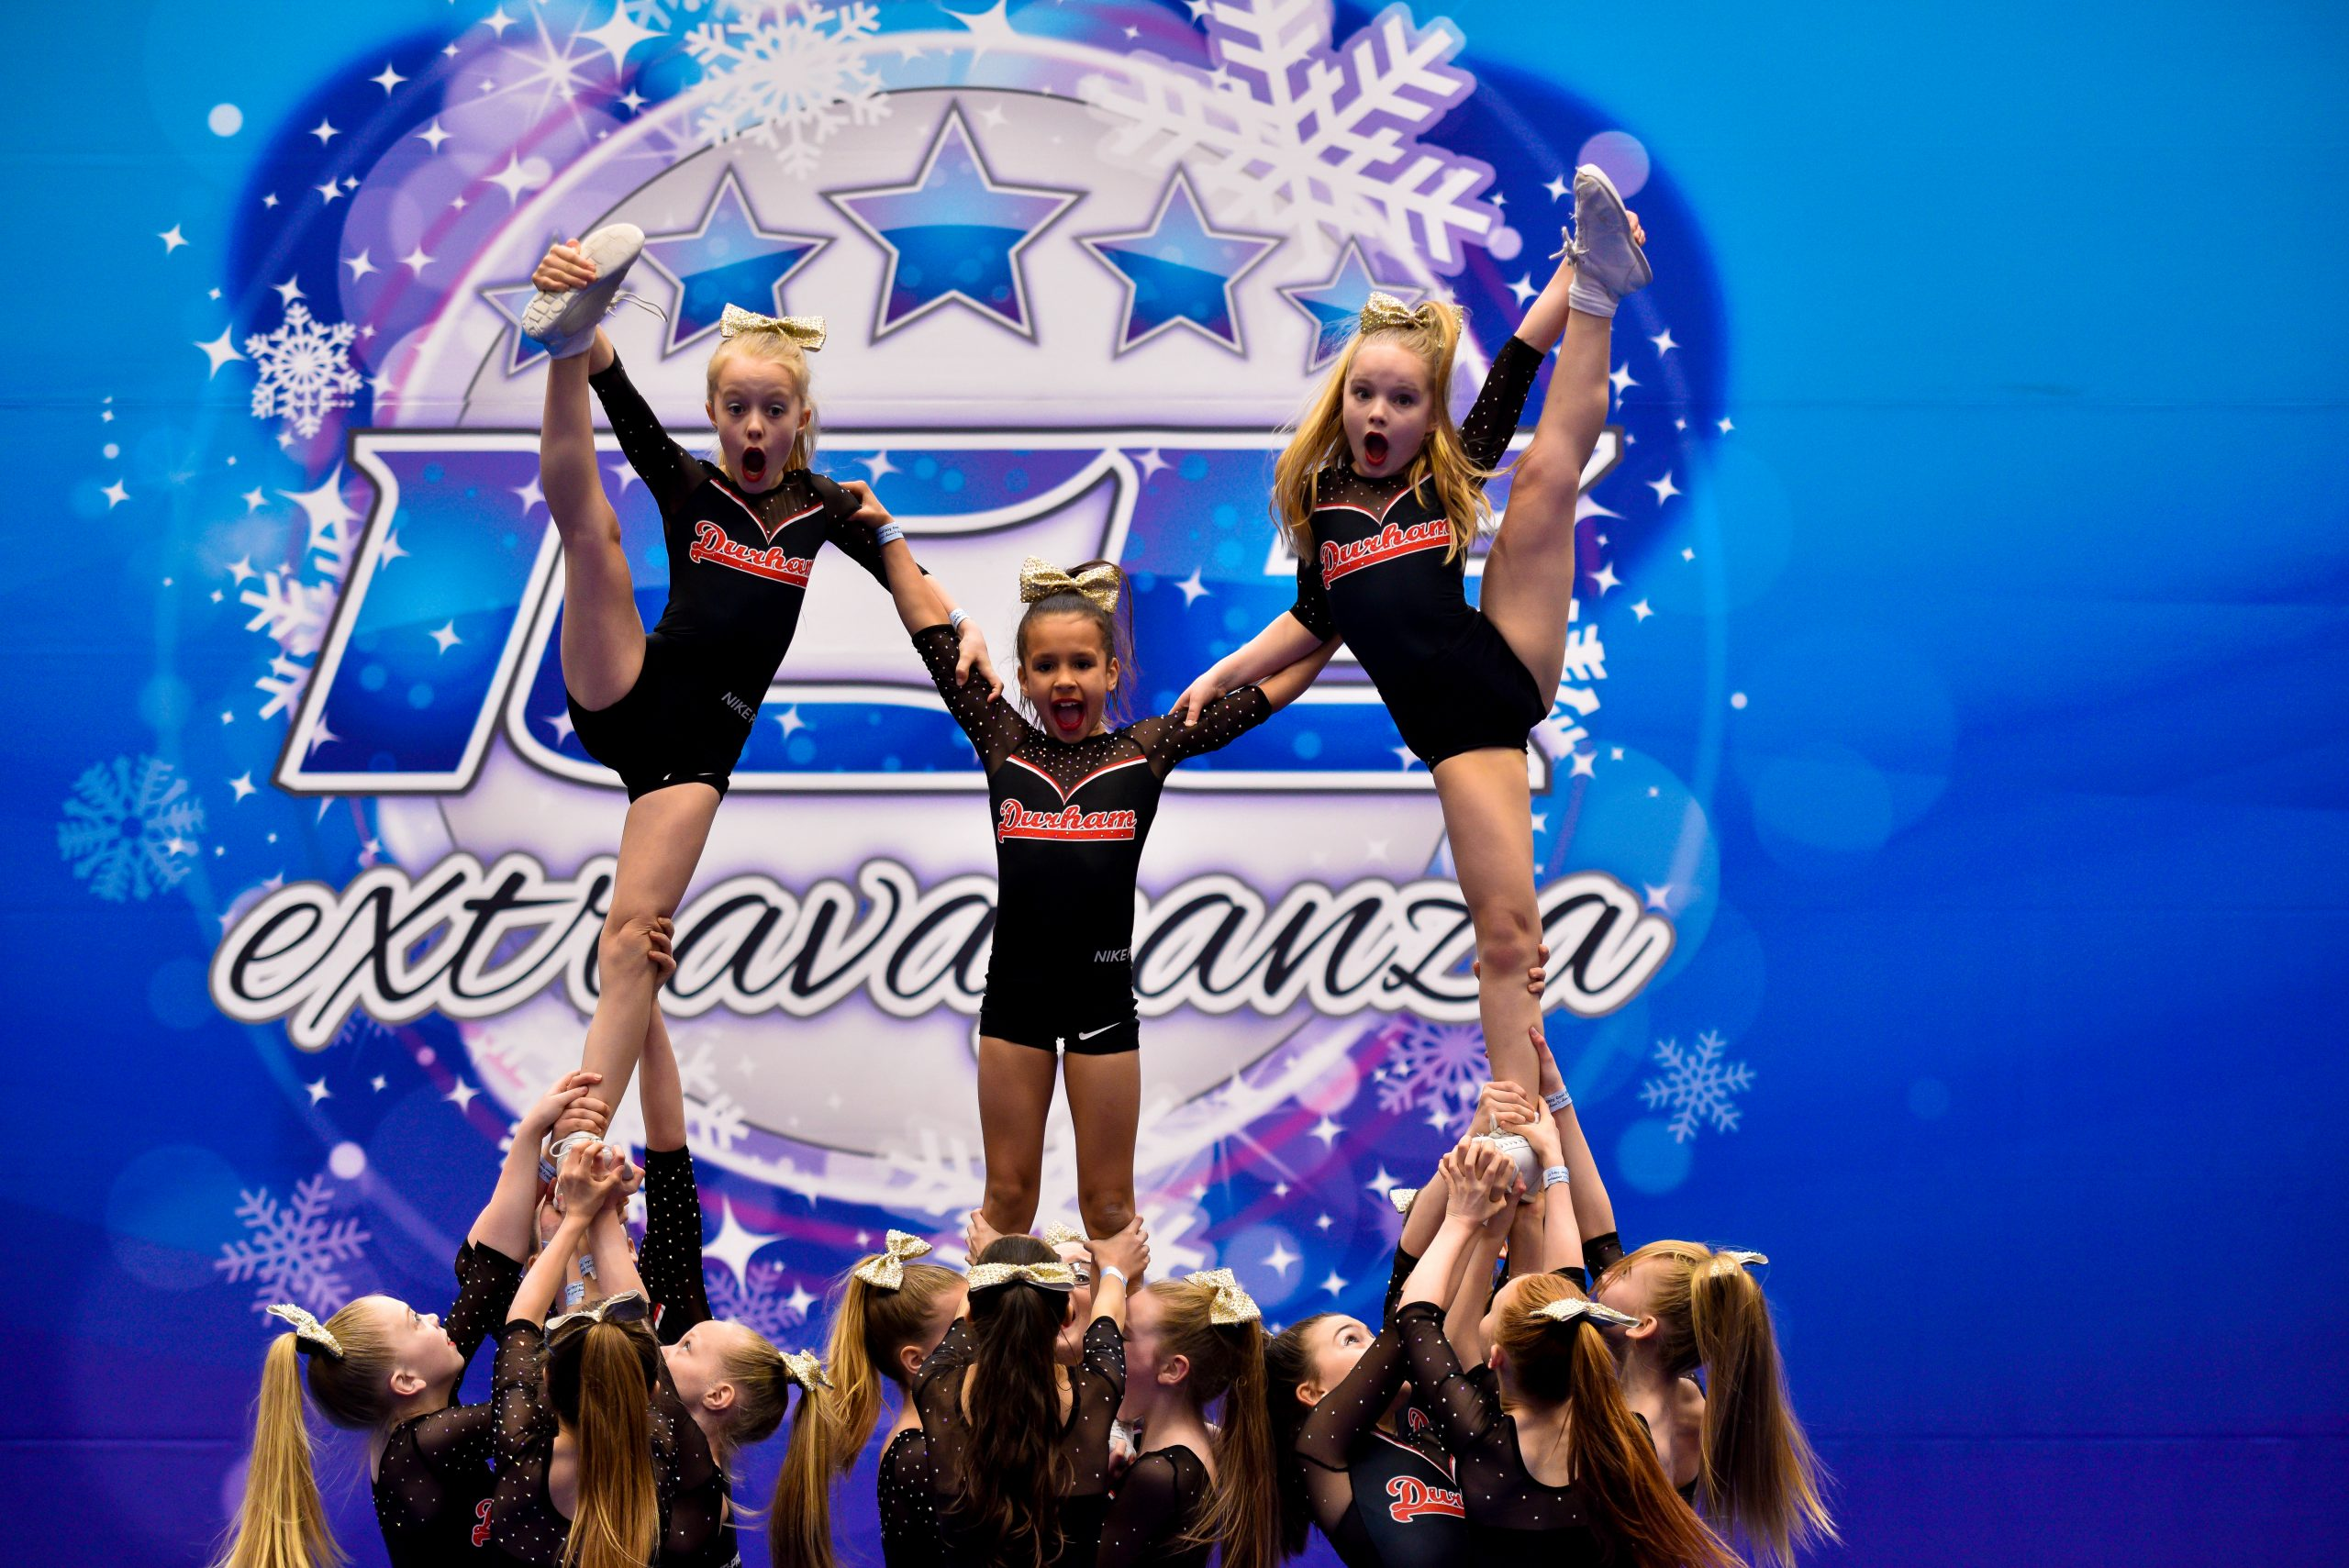 A cheer team compete in a pyramid at ICE Blizzard